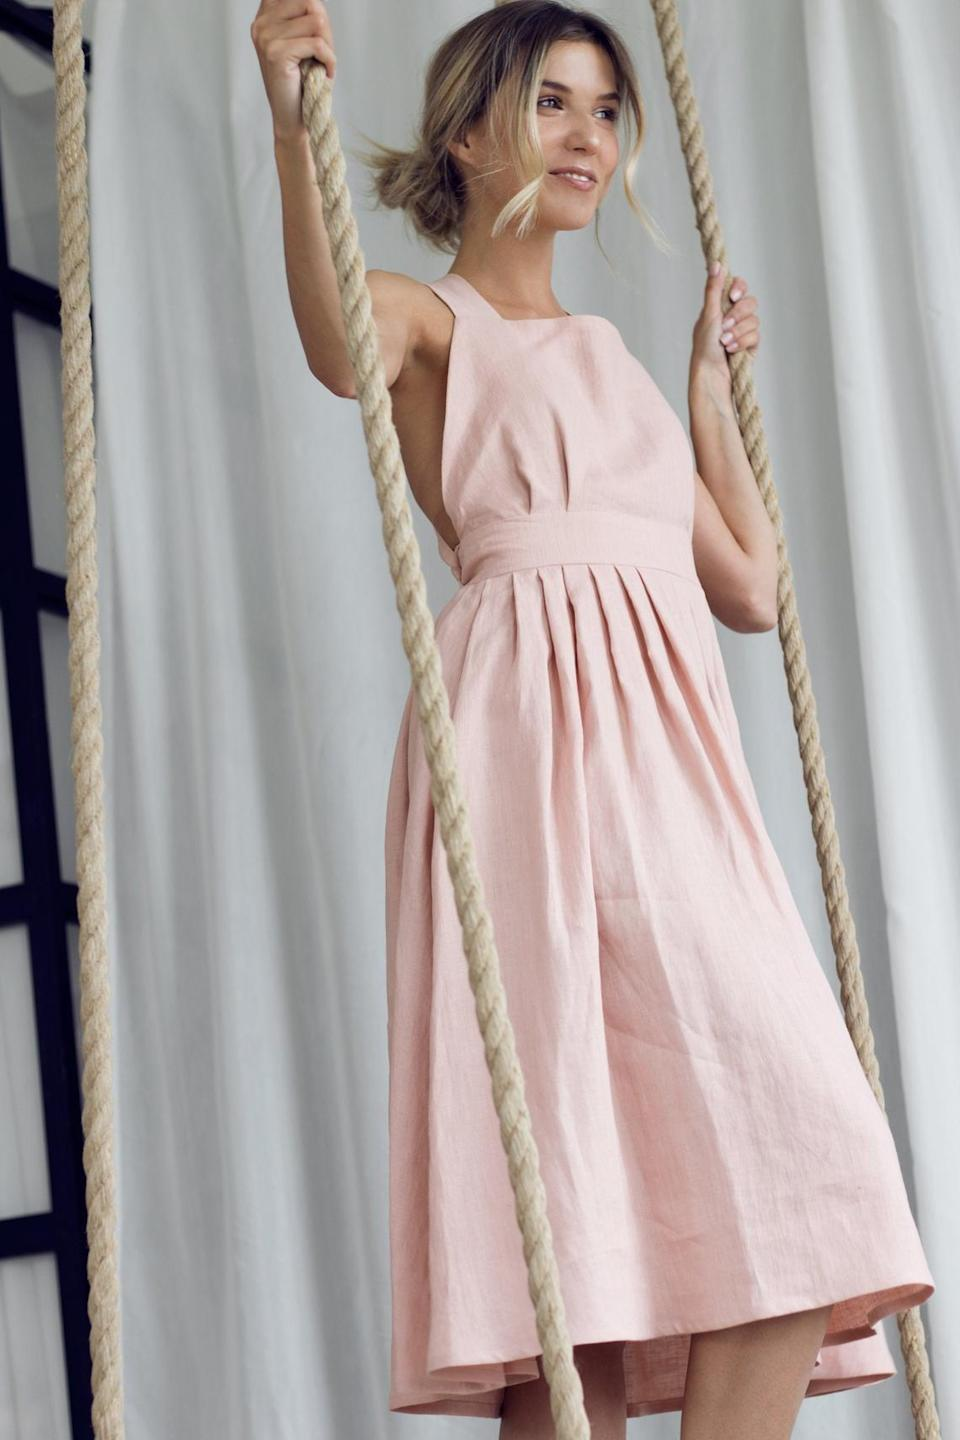 "<p>This <a href=""https://www.popsugar.com/buy/Etsy-Crossback-Linen-Dress-576338?p_name=Etsy%20Crossback%20Linen%20Dress&retailer=etsy.com&pid=576338&price=102&evar1=fab%3Aus&evar9=47495570&evar98=https%3A%2F%2Fwww.popsugar.com%2Fphoto-gallery%2F47495570%2Fimage%2F47496470%2FEtsy-Crossback-Linen-Dress&list1=shopping%2Cdresses%2Csummer%20fashion%2Cfashion%20shopping&prop13=api&pdata=1"" class=""link rapid-noclick-resp"" rel=""nofollow noopener"" target=""_blank"" data-ylk=""slk:Etsy Crossback Linen Dress"">Etsy Crossback Linen Dress</a> ($102) is available in many shades.</p>"